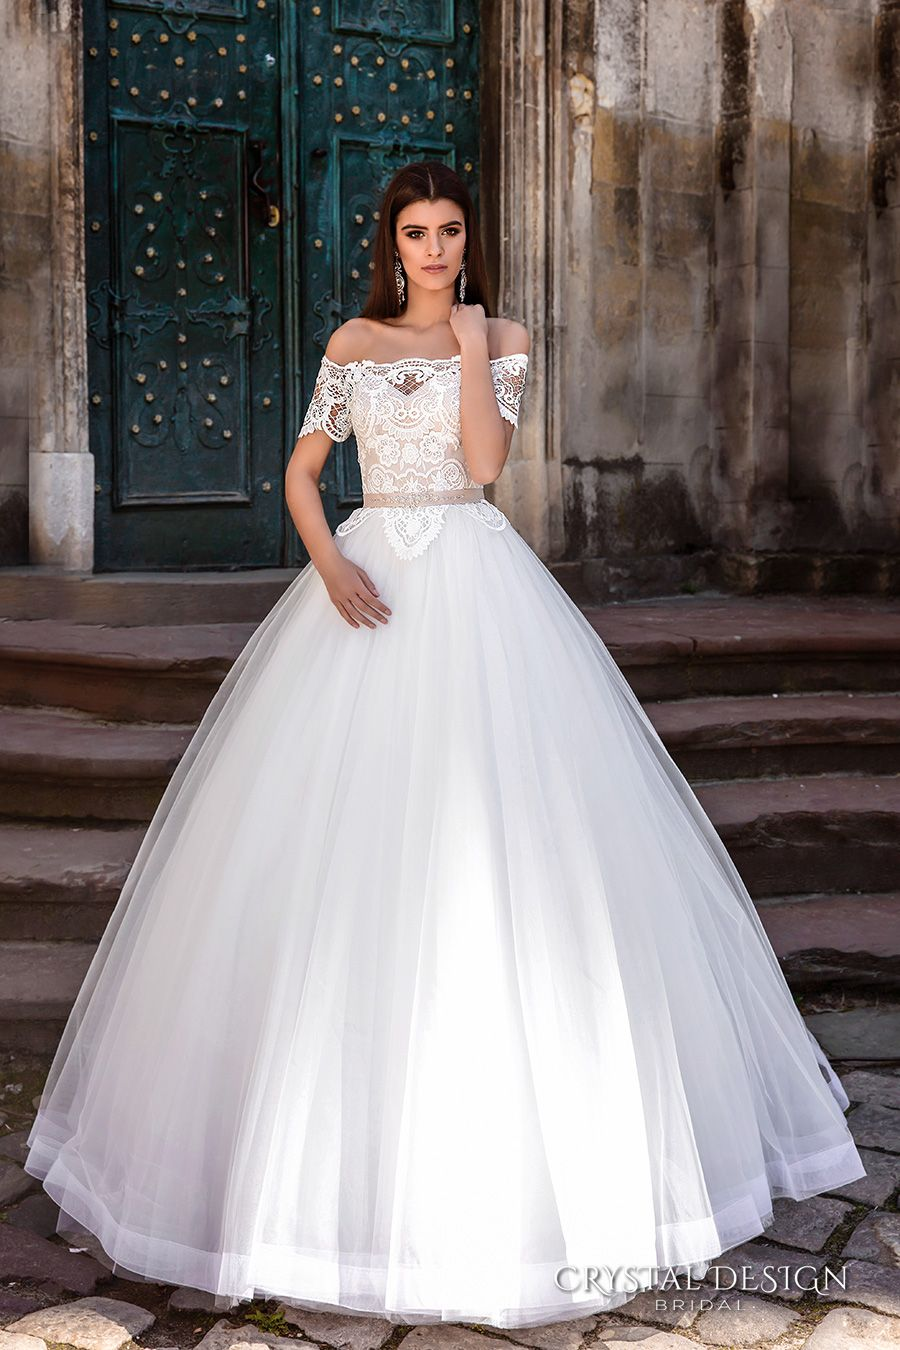 CRYSTAL DESIGN bridal 2016 off the shoulder lace bodice embellished hem princess tulle ball gown wedding dress illusion lace back royal train (marisa) mv  #bridal #wedding #weddingdress #weddinggown #bridalgown #dreamgown #dreamdress #engaged #inspiration #bridalinspiration #weddinginspiration #weddingdresses #ballgown #romantic #lace #crystaldesign